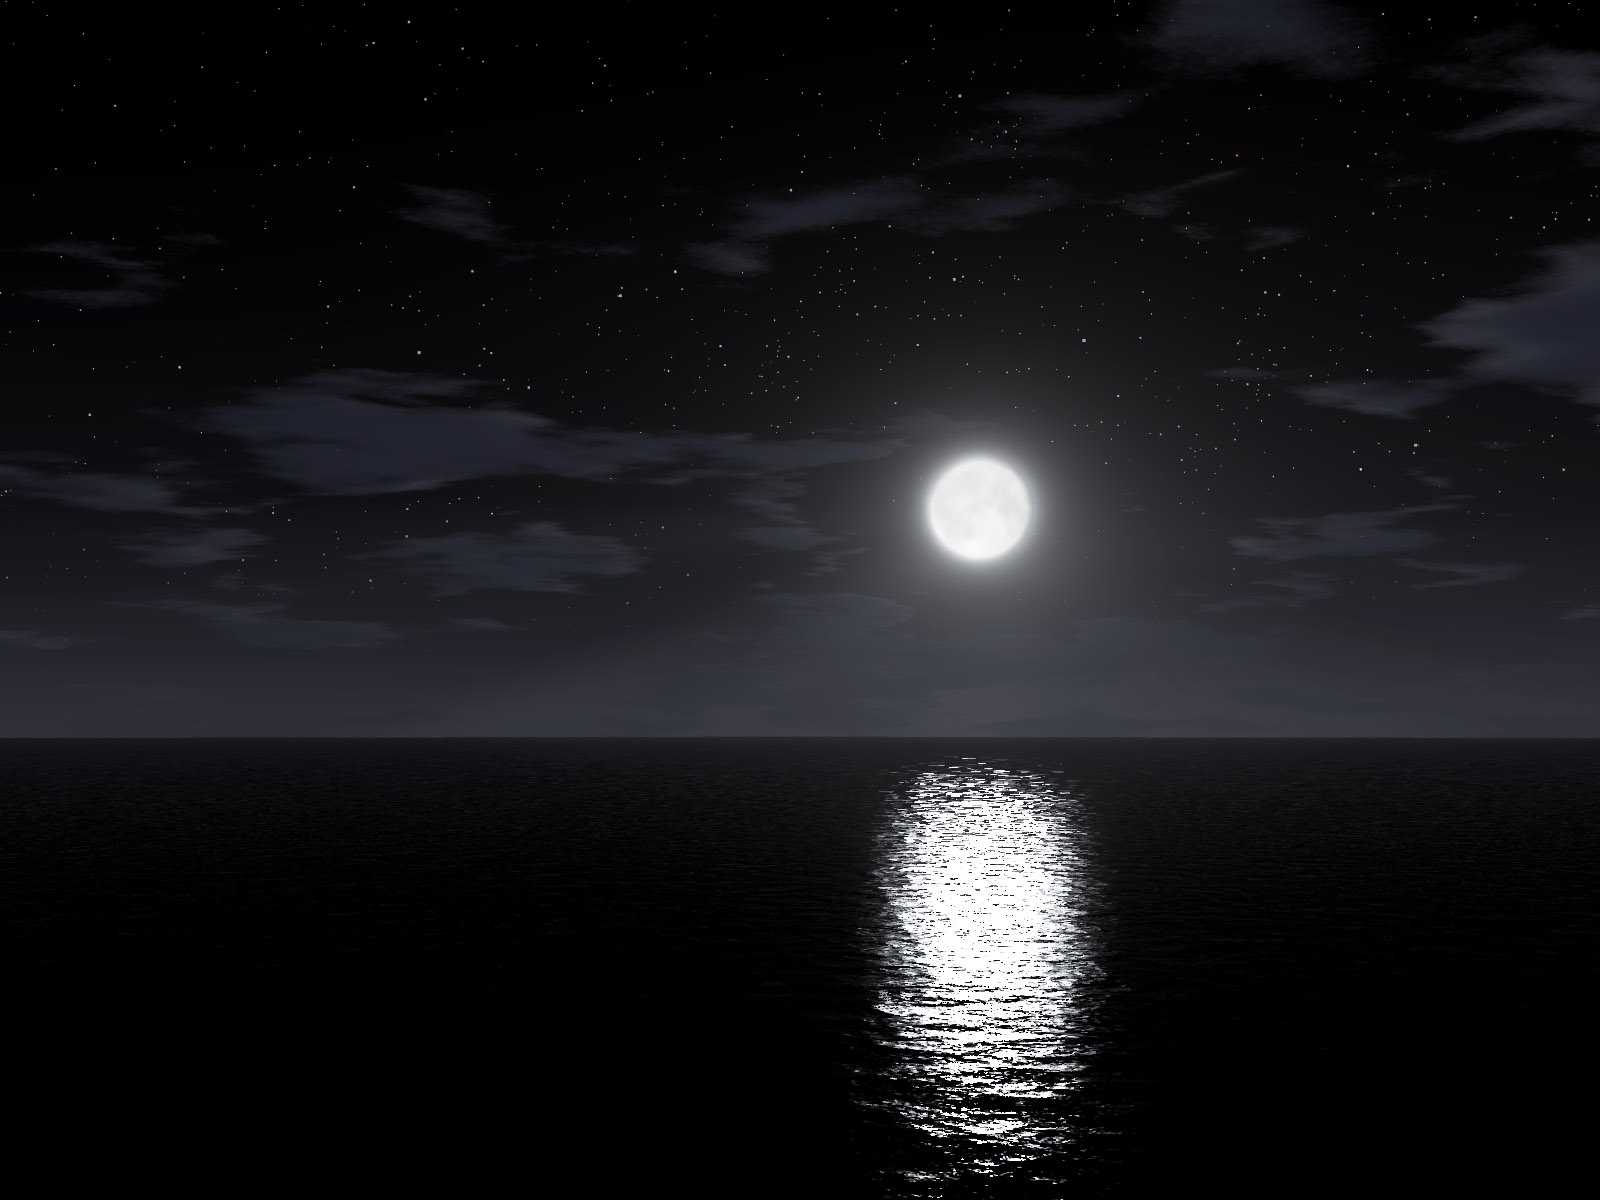 Moon Reflection in the Sea at Night  531.77 Kb